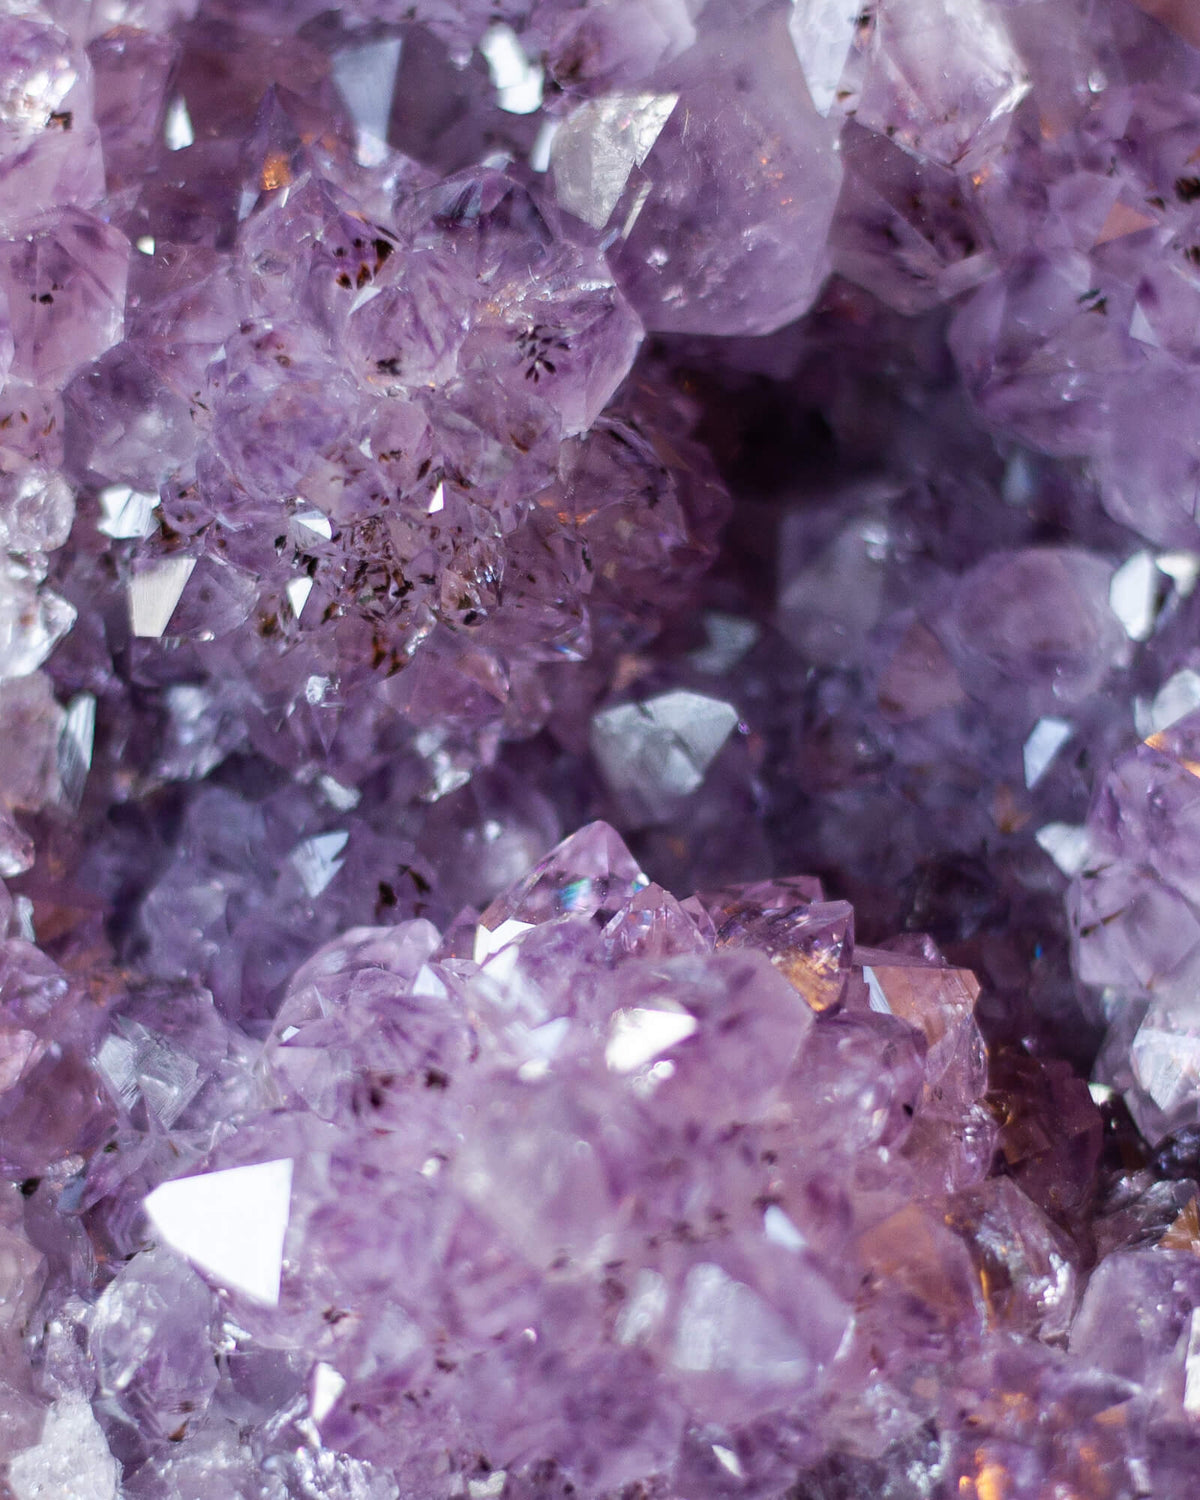 detail of purple amethyst crystal texture